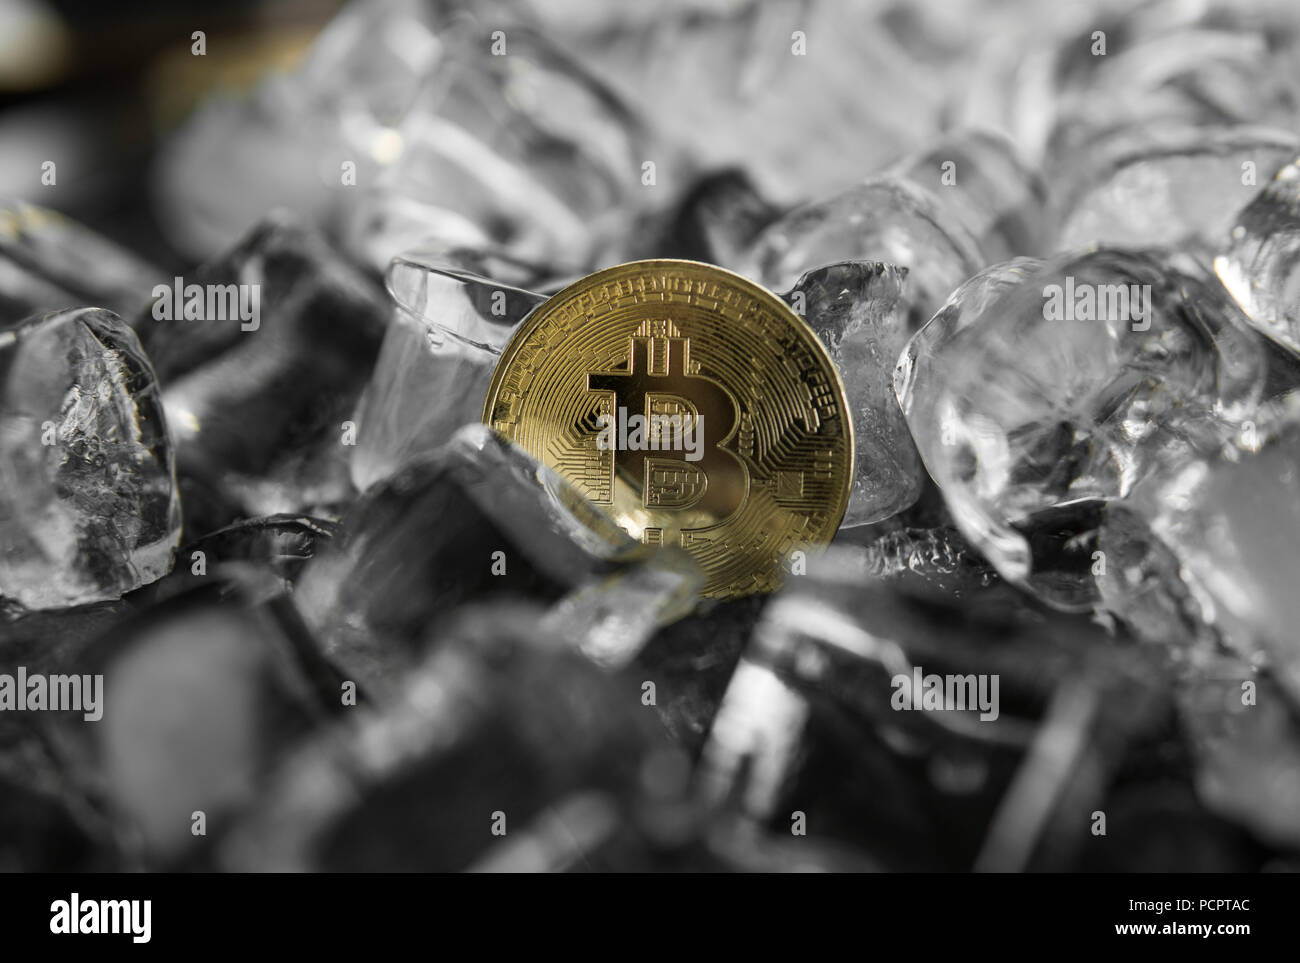 Gold bitcoin on ice background. The concept of the exchange in winter. Freeze. Blockchain mining. Digital money and virtual cryptocurrency concept. Iinvestment. Bussiness, commercial - Stock Image